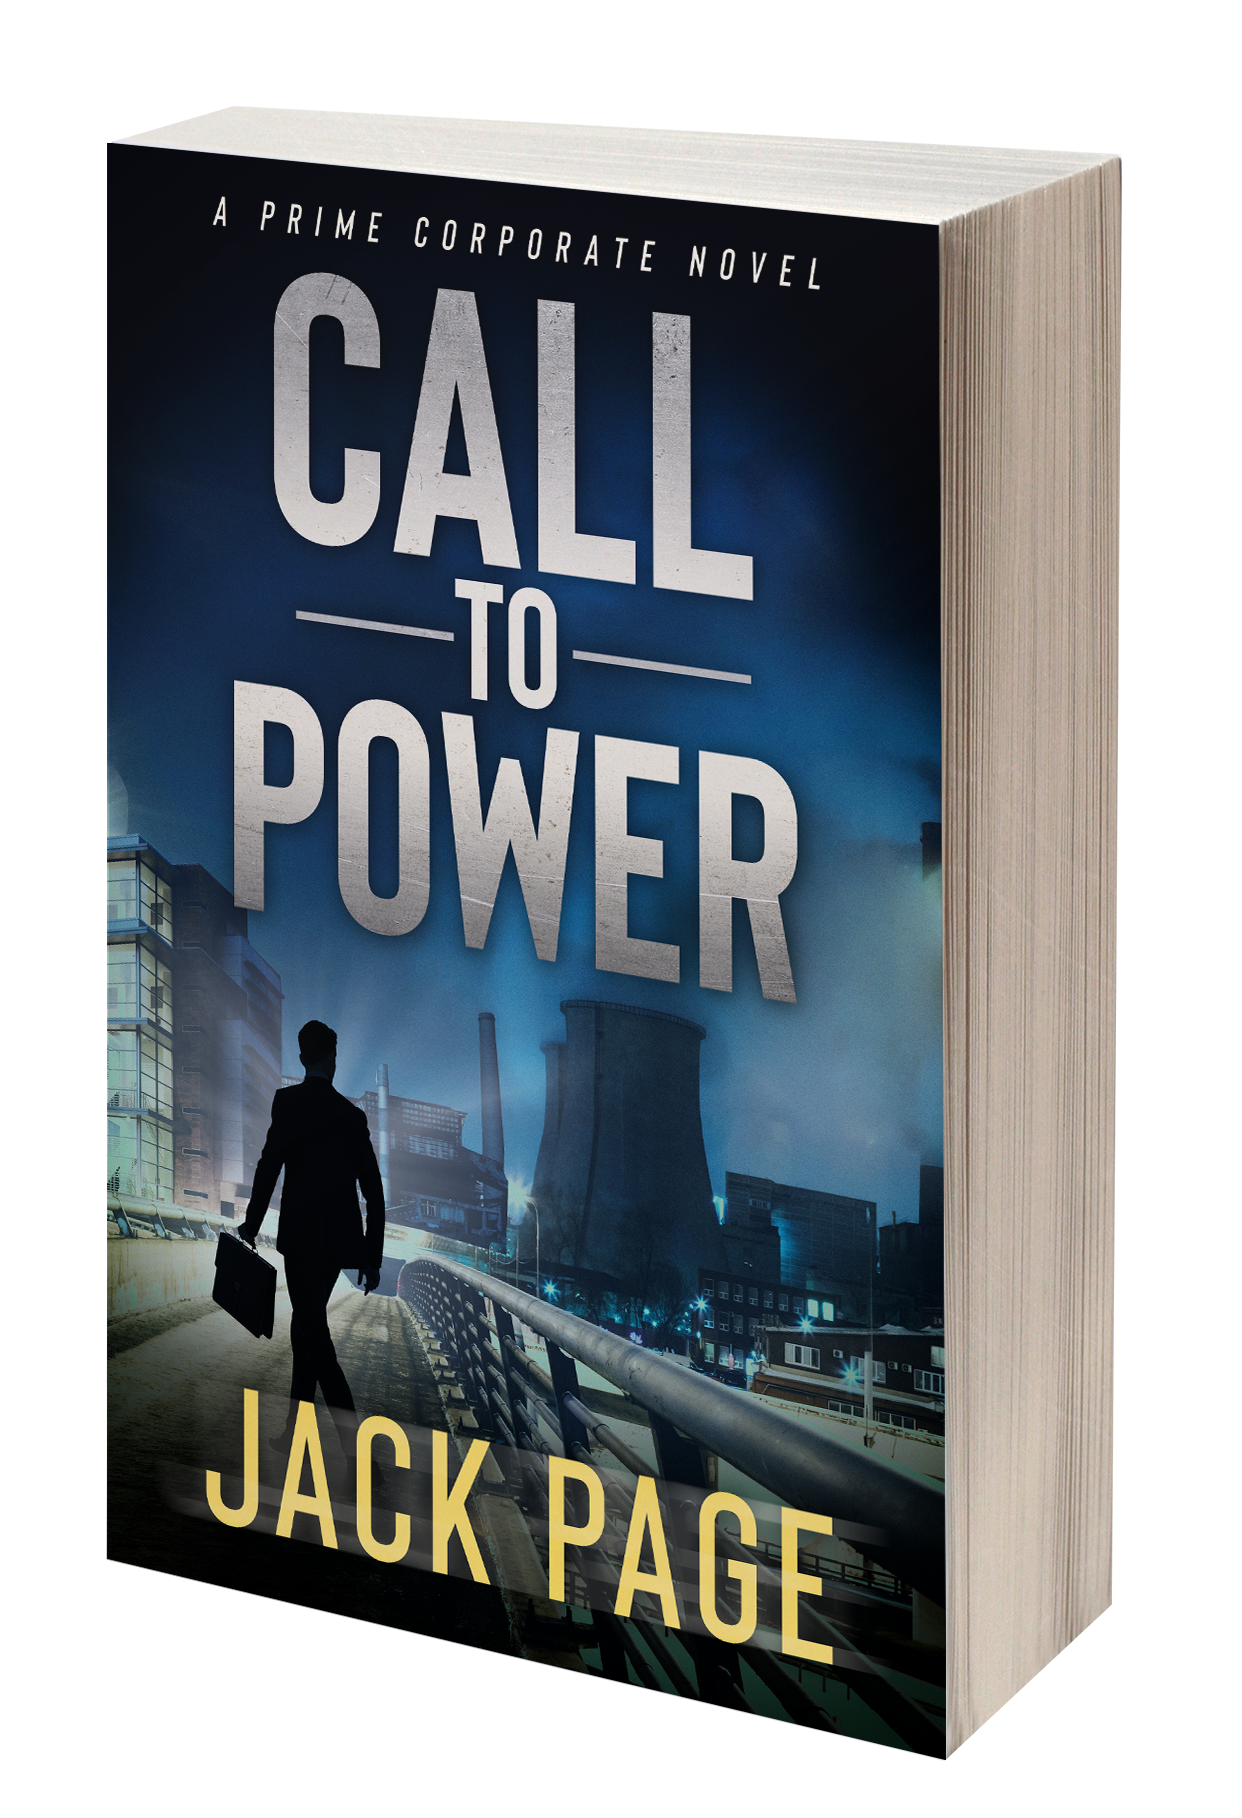 Call to Power by Jack Page is one of the best corporate novels and corporate thrillers